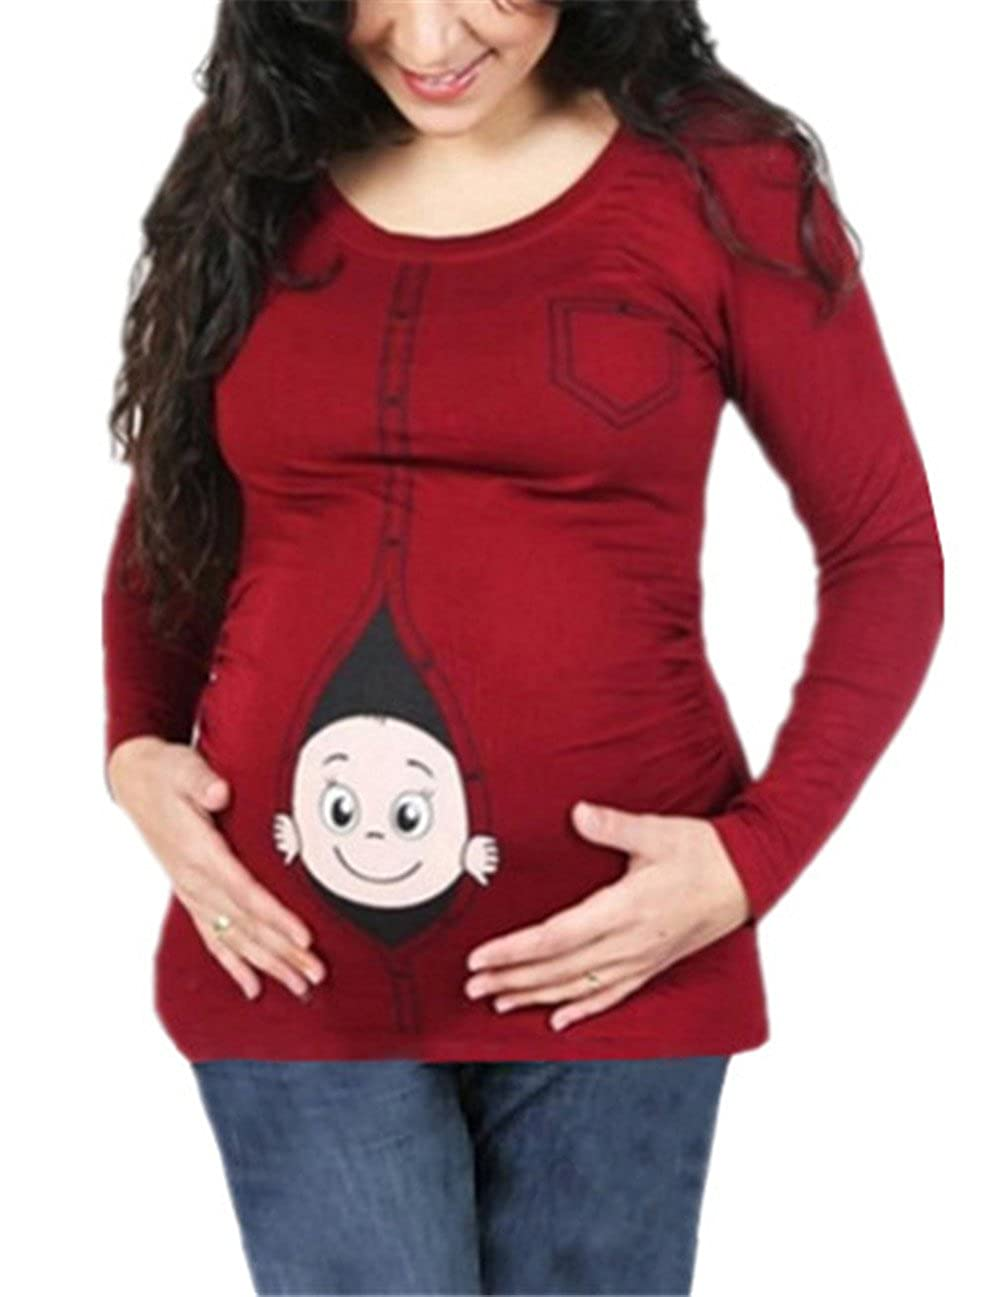 AILIENT Maternity T Shirt Pregnancy Tee For Mothers